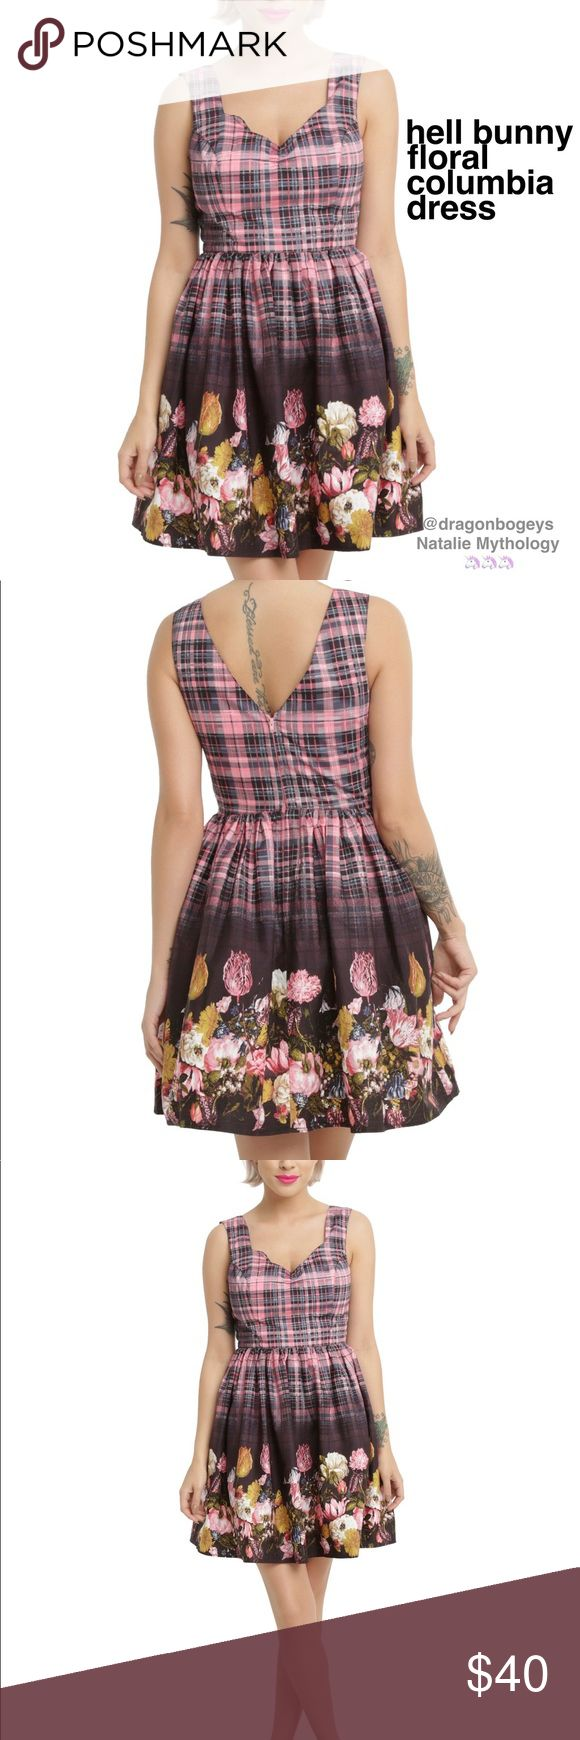 """Hell Bunny Floral Columbia Dress Cute pink and blue tartan plaid pattern dress with soft details like the floral garden print and scalloped, gathered sweetheart neckline. Back zipper closure. Side pockets. Fabric is 100% cotton. Length is 36"""", bust is 20"""" laid flat, waist is 16.5"""" laid flat. Brand new, only tried on. Hell Bunny Dresses"""